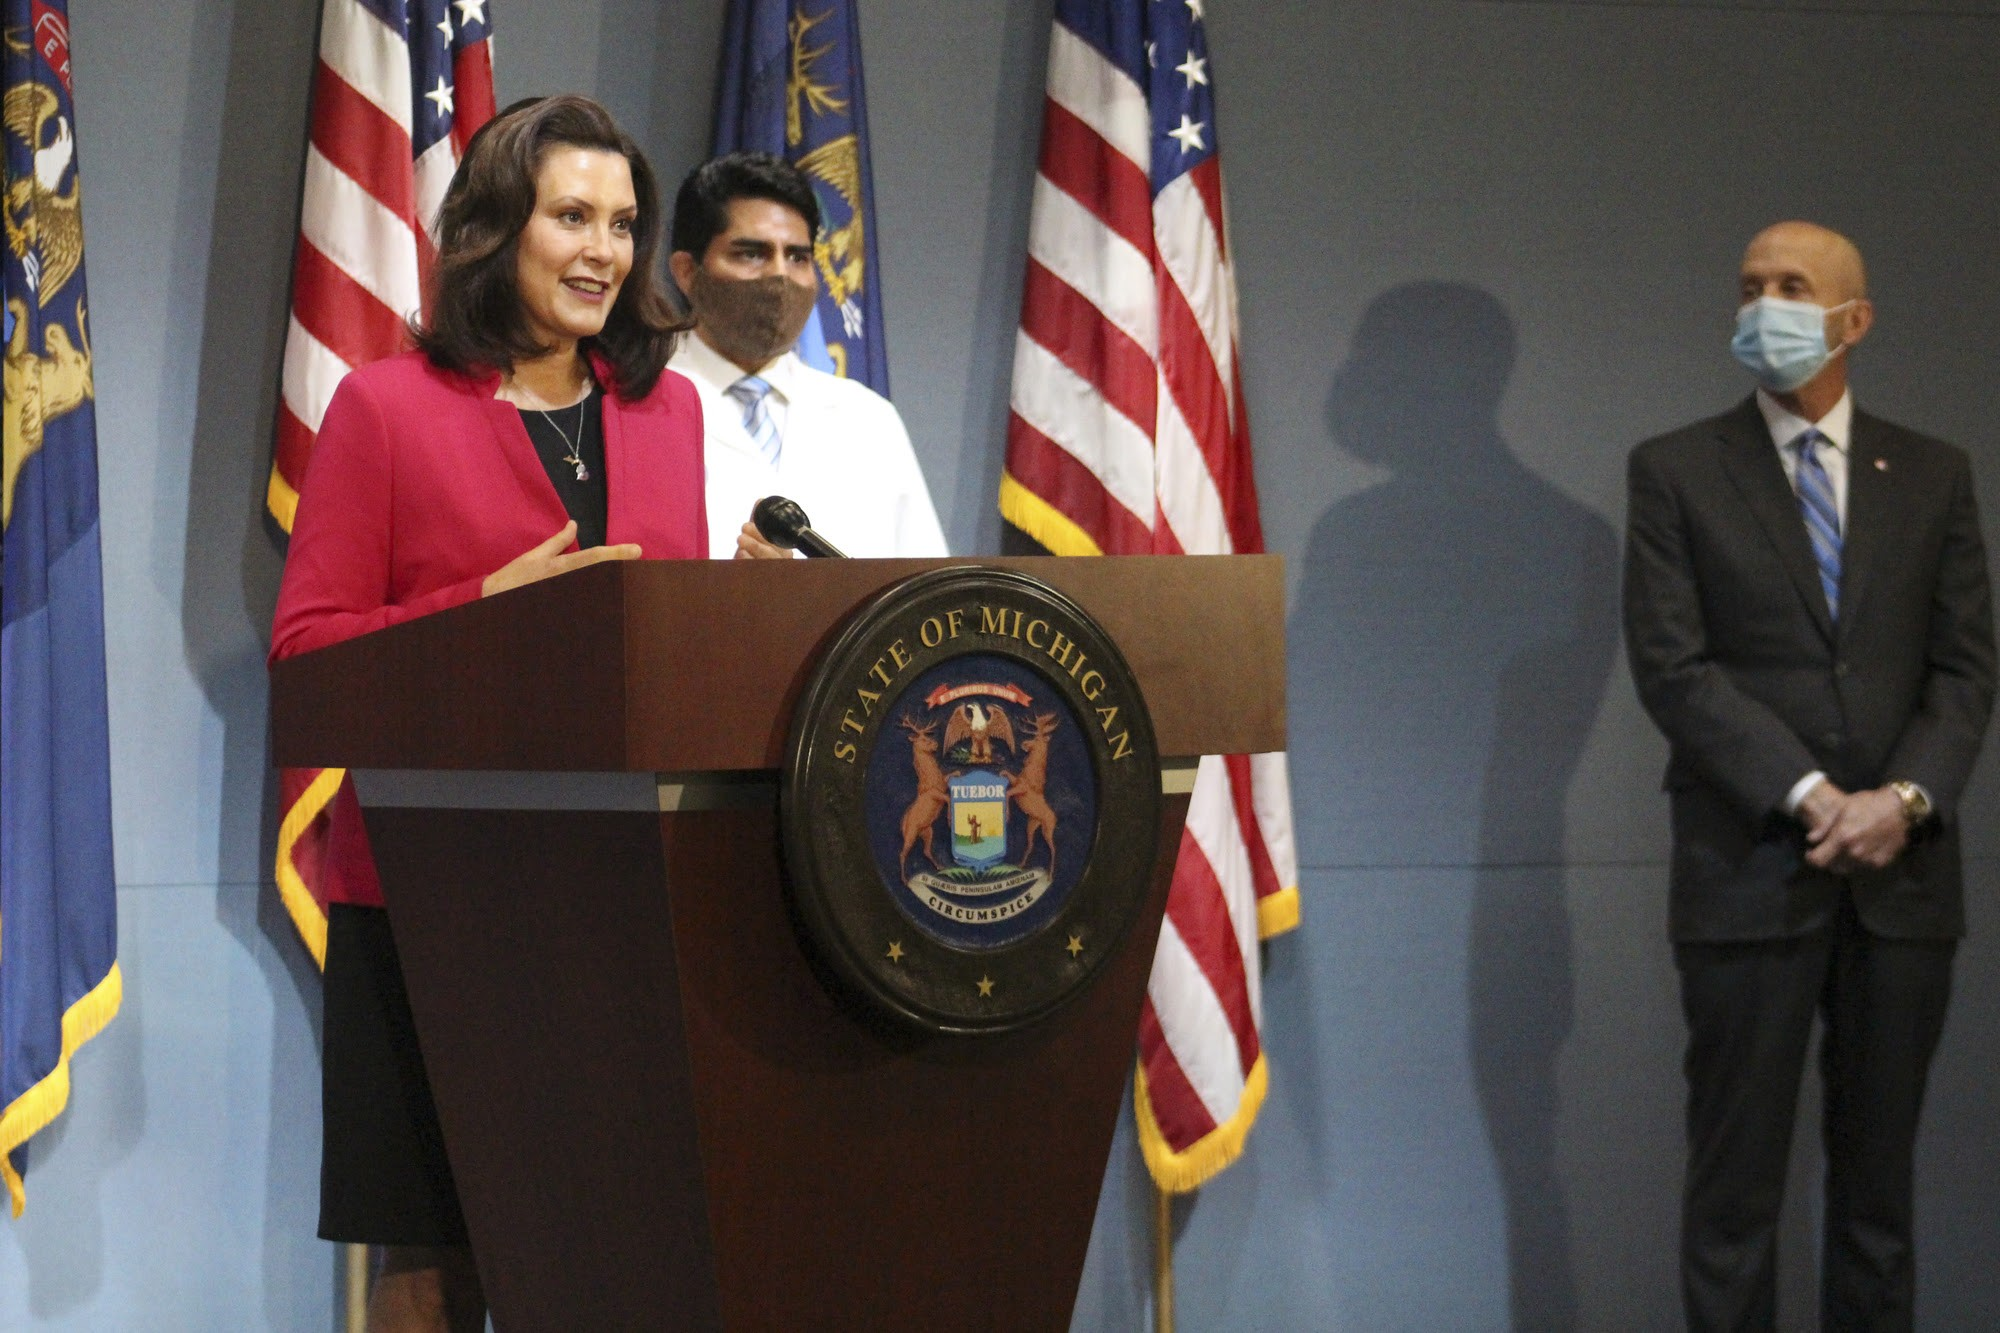 Gov. Whitmer extends stay at home order until June 12